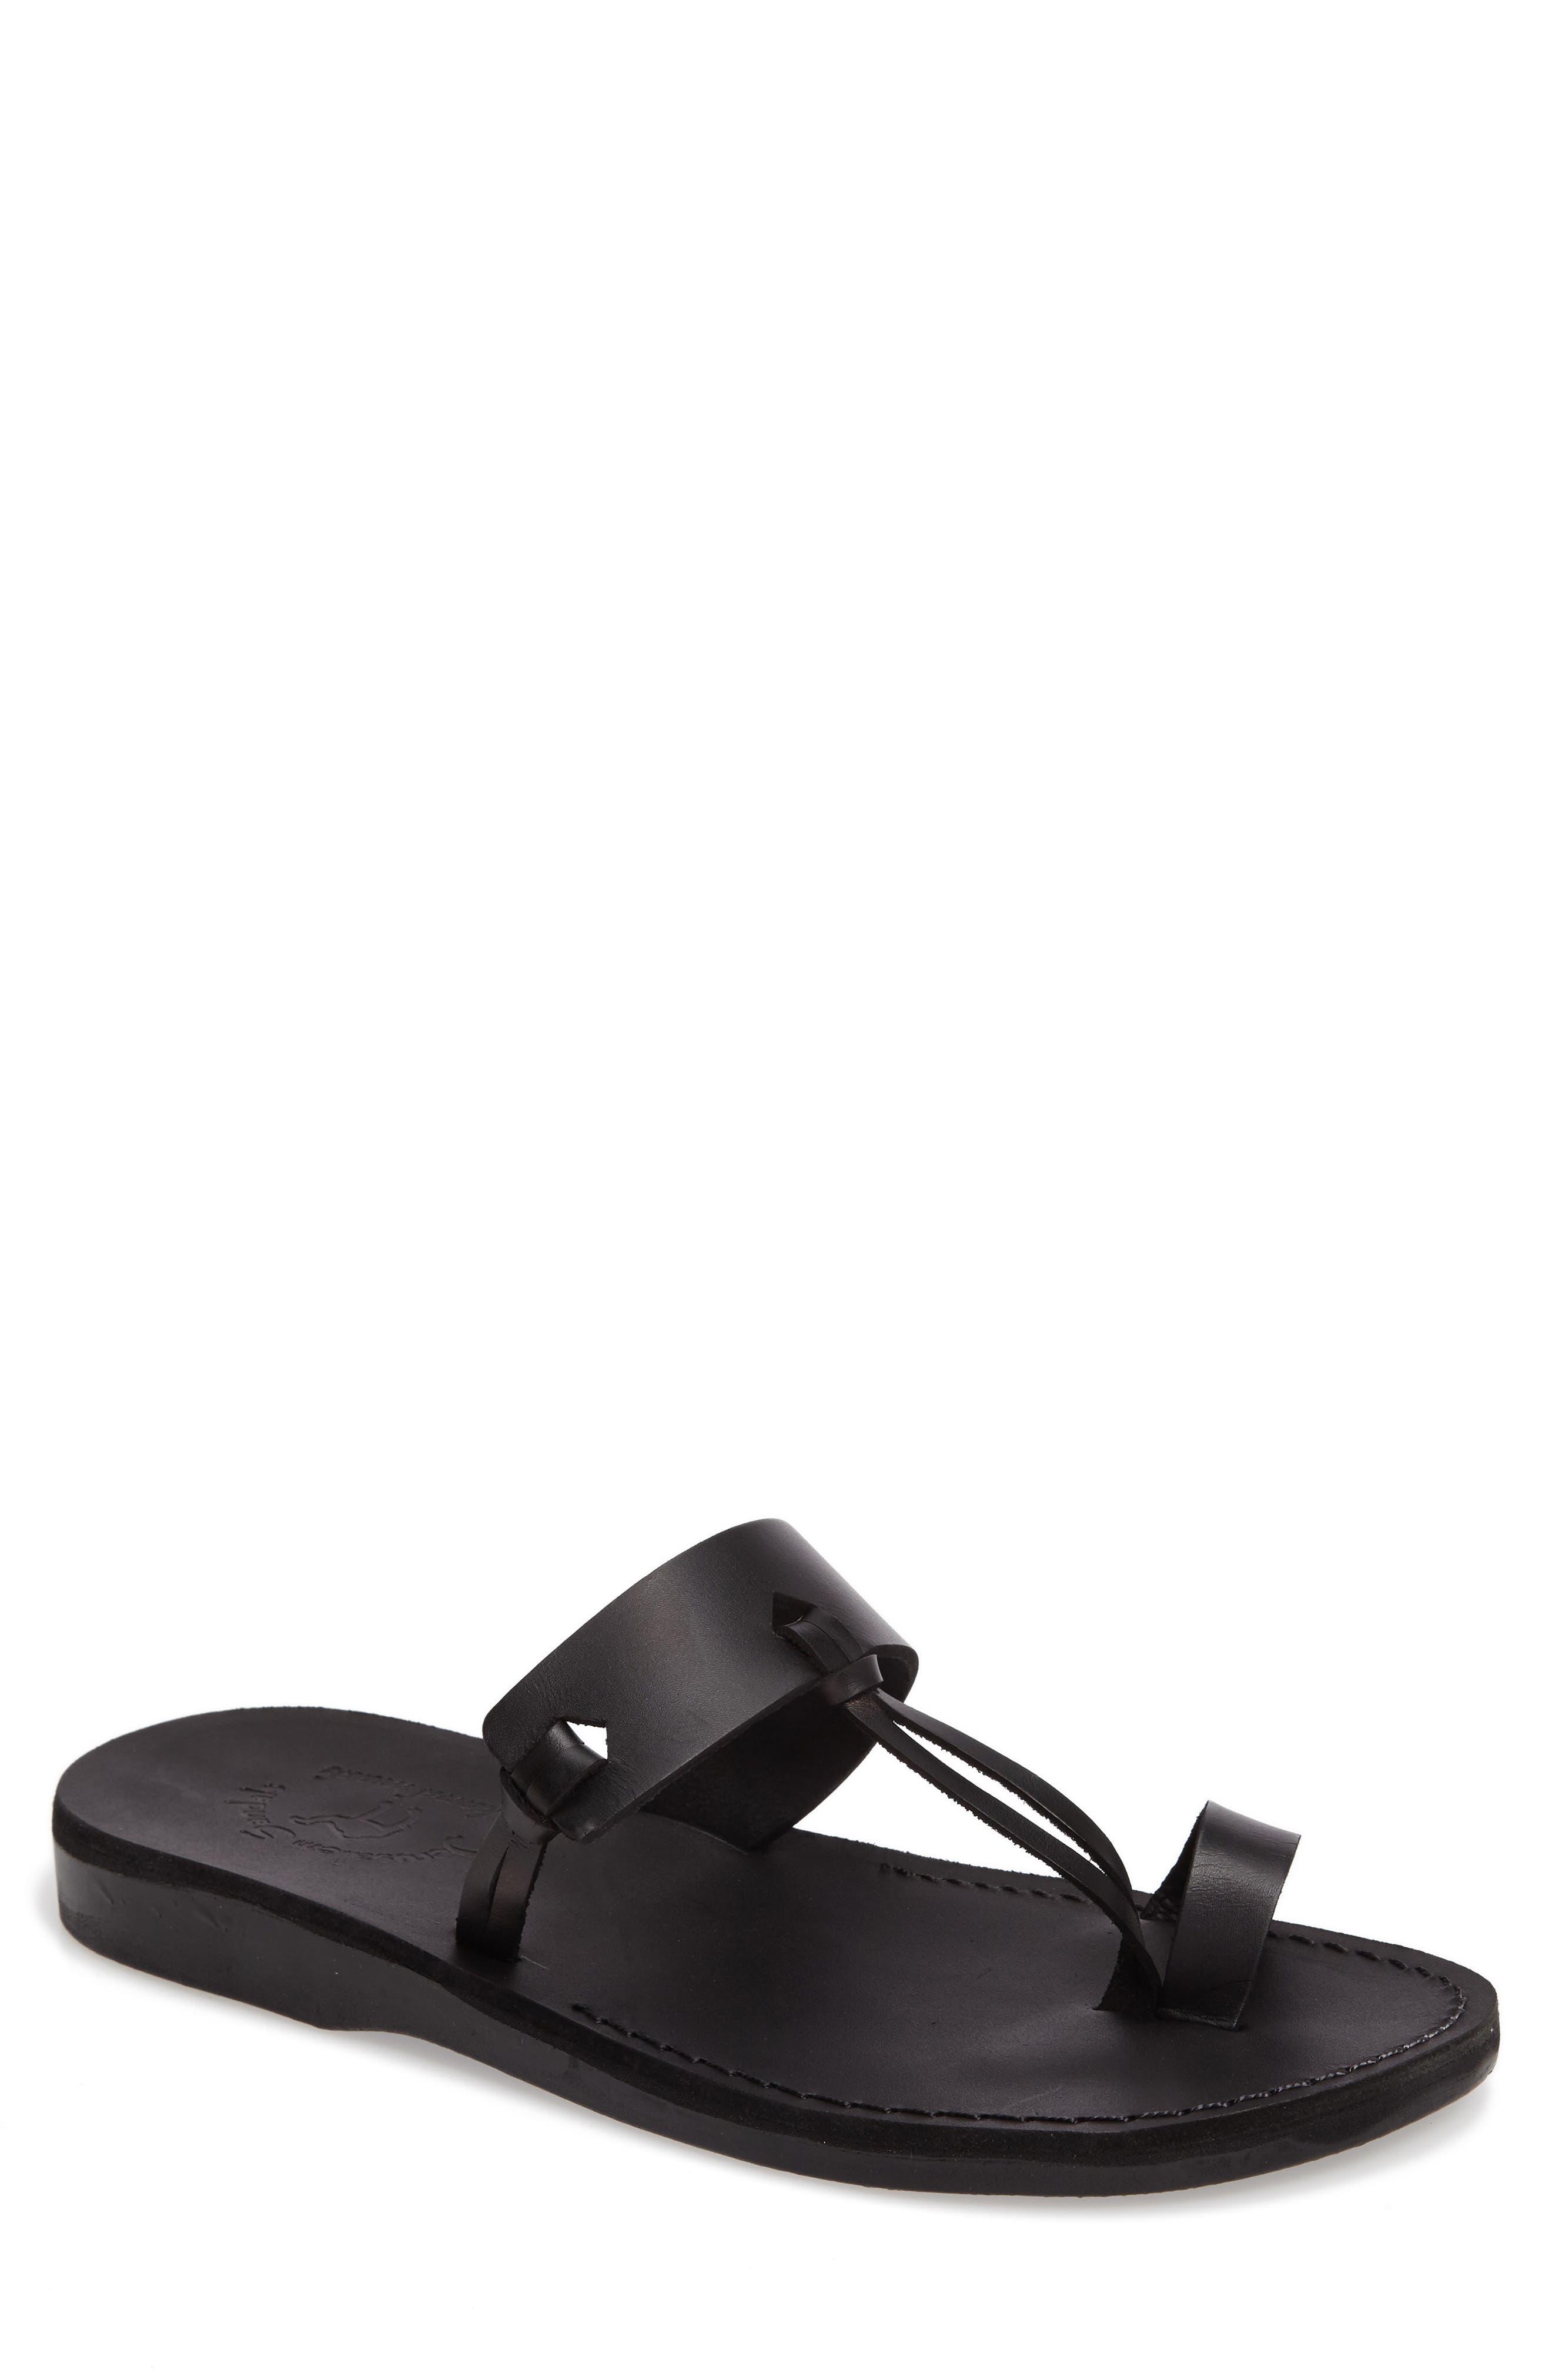 JERUSALEM SANDALS, David Toe-Loop Sandal, Main thumbnail 1, color, BLACK LEATHER